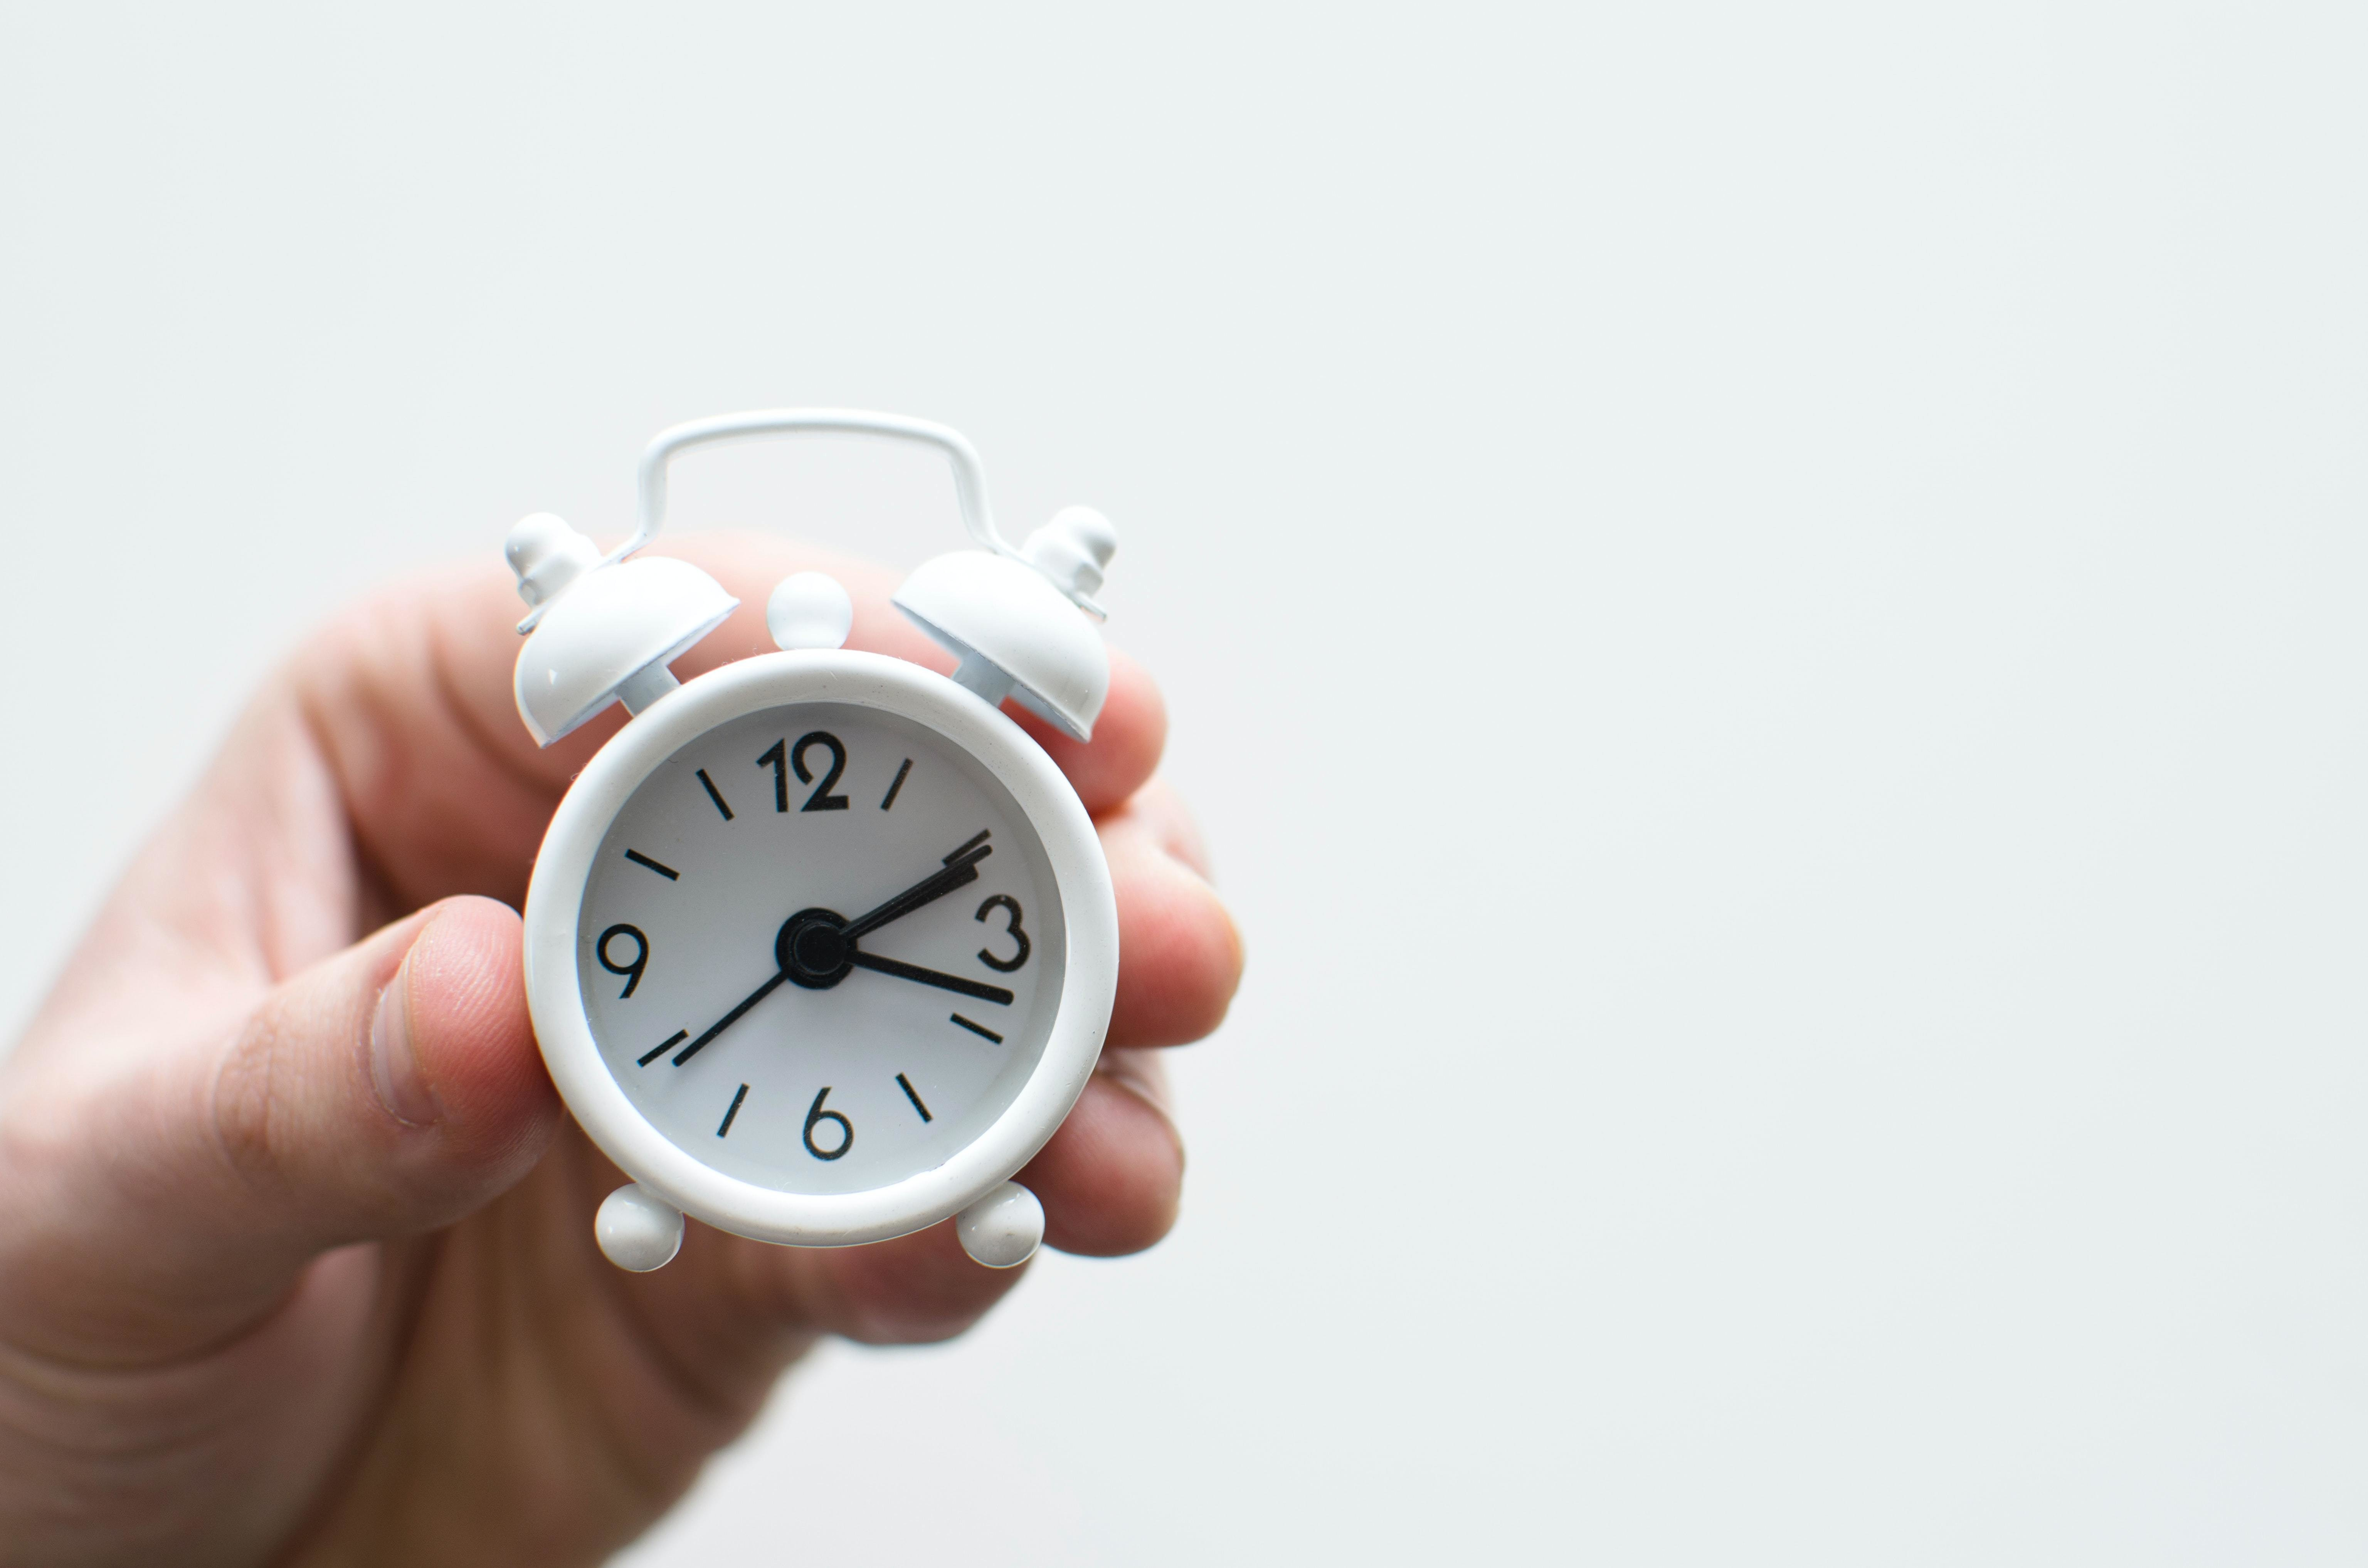 a person holding up a small alarm clock